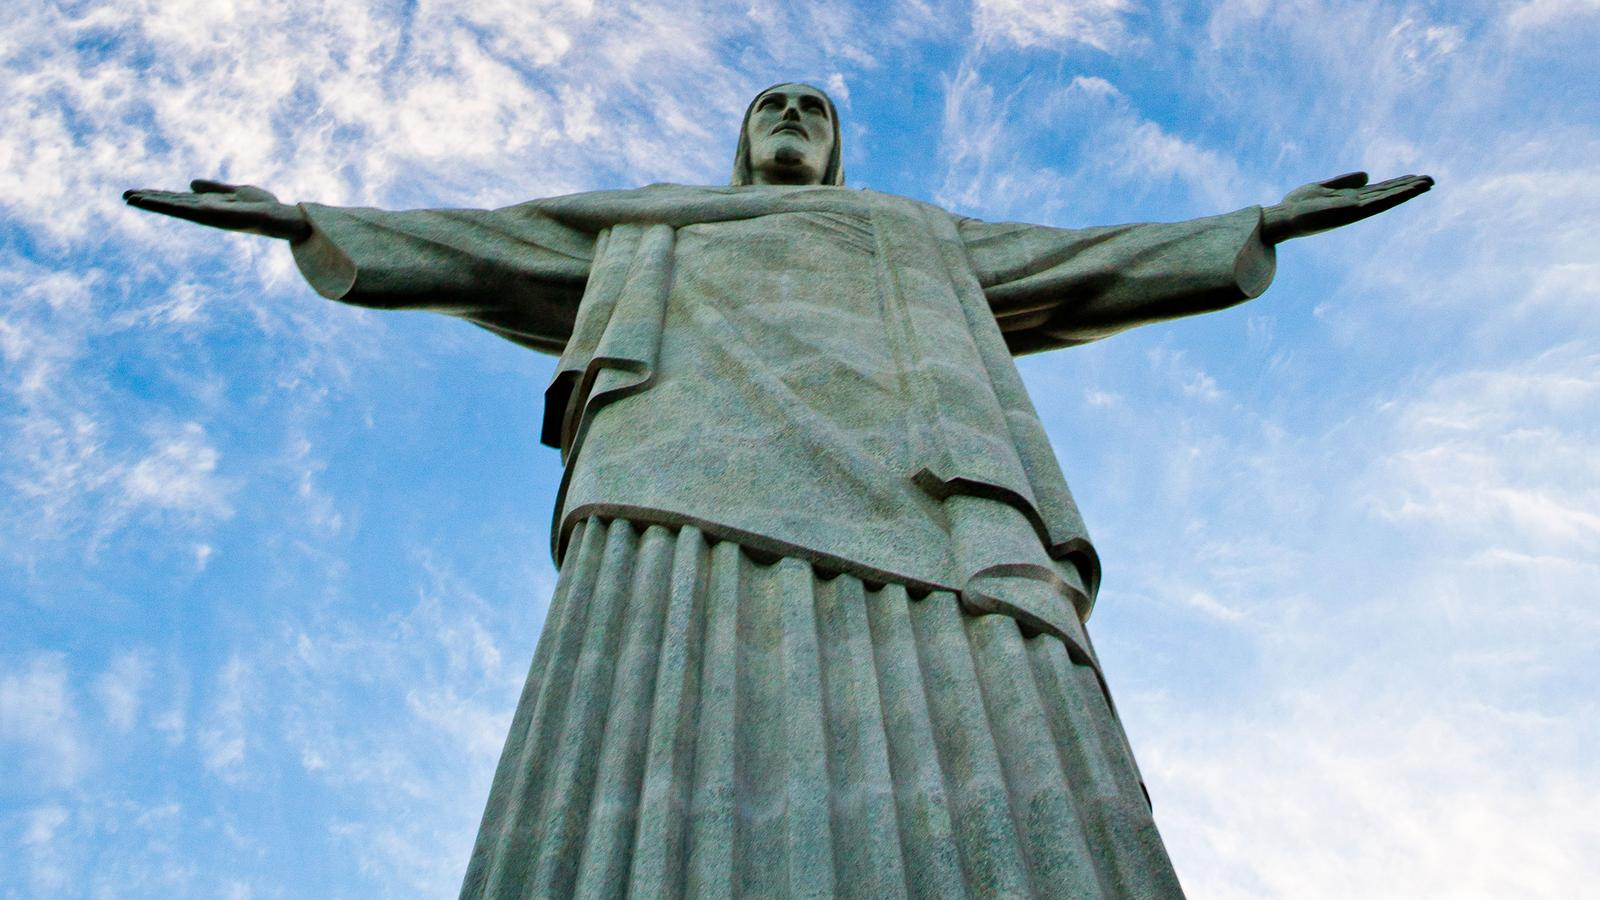 The iconic Christ the Redeemer in Rio, Brazil